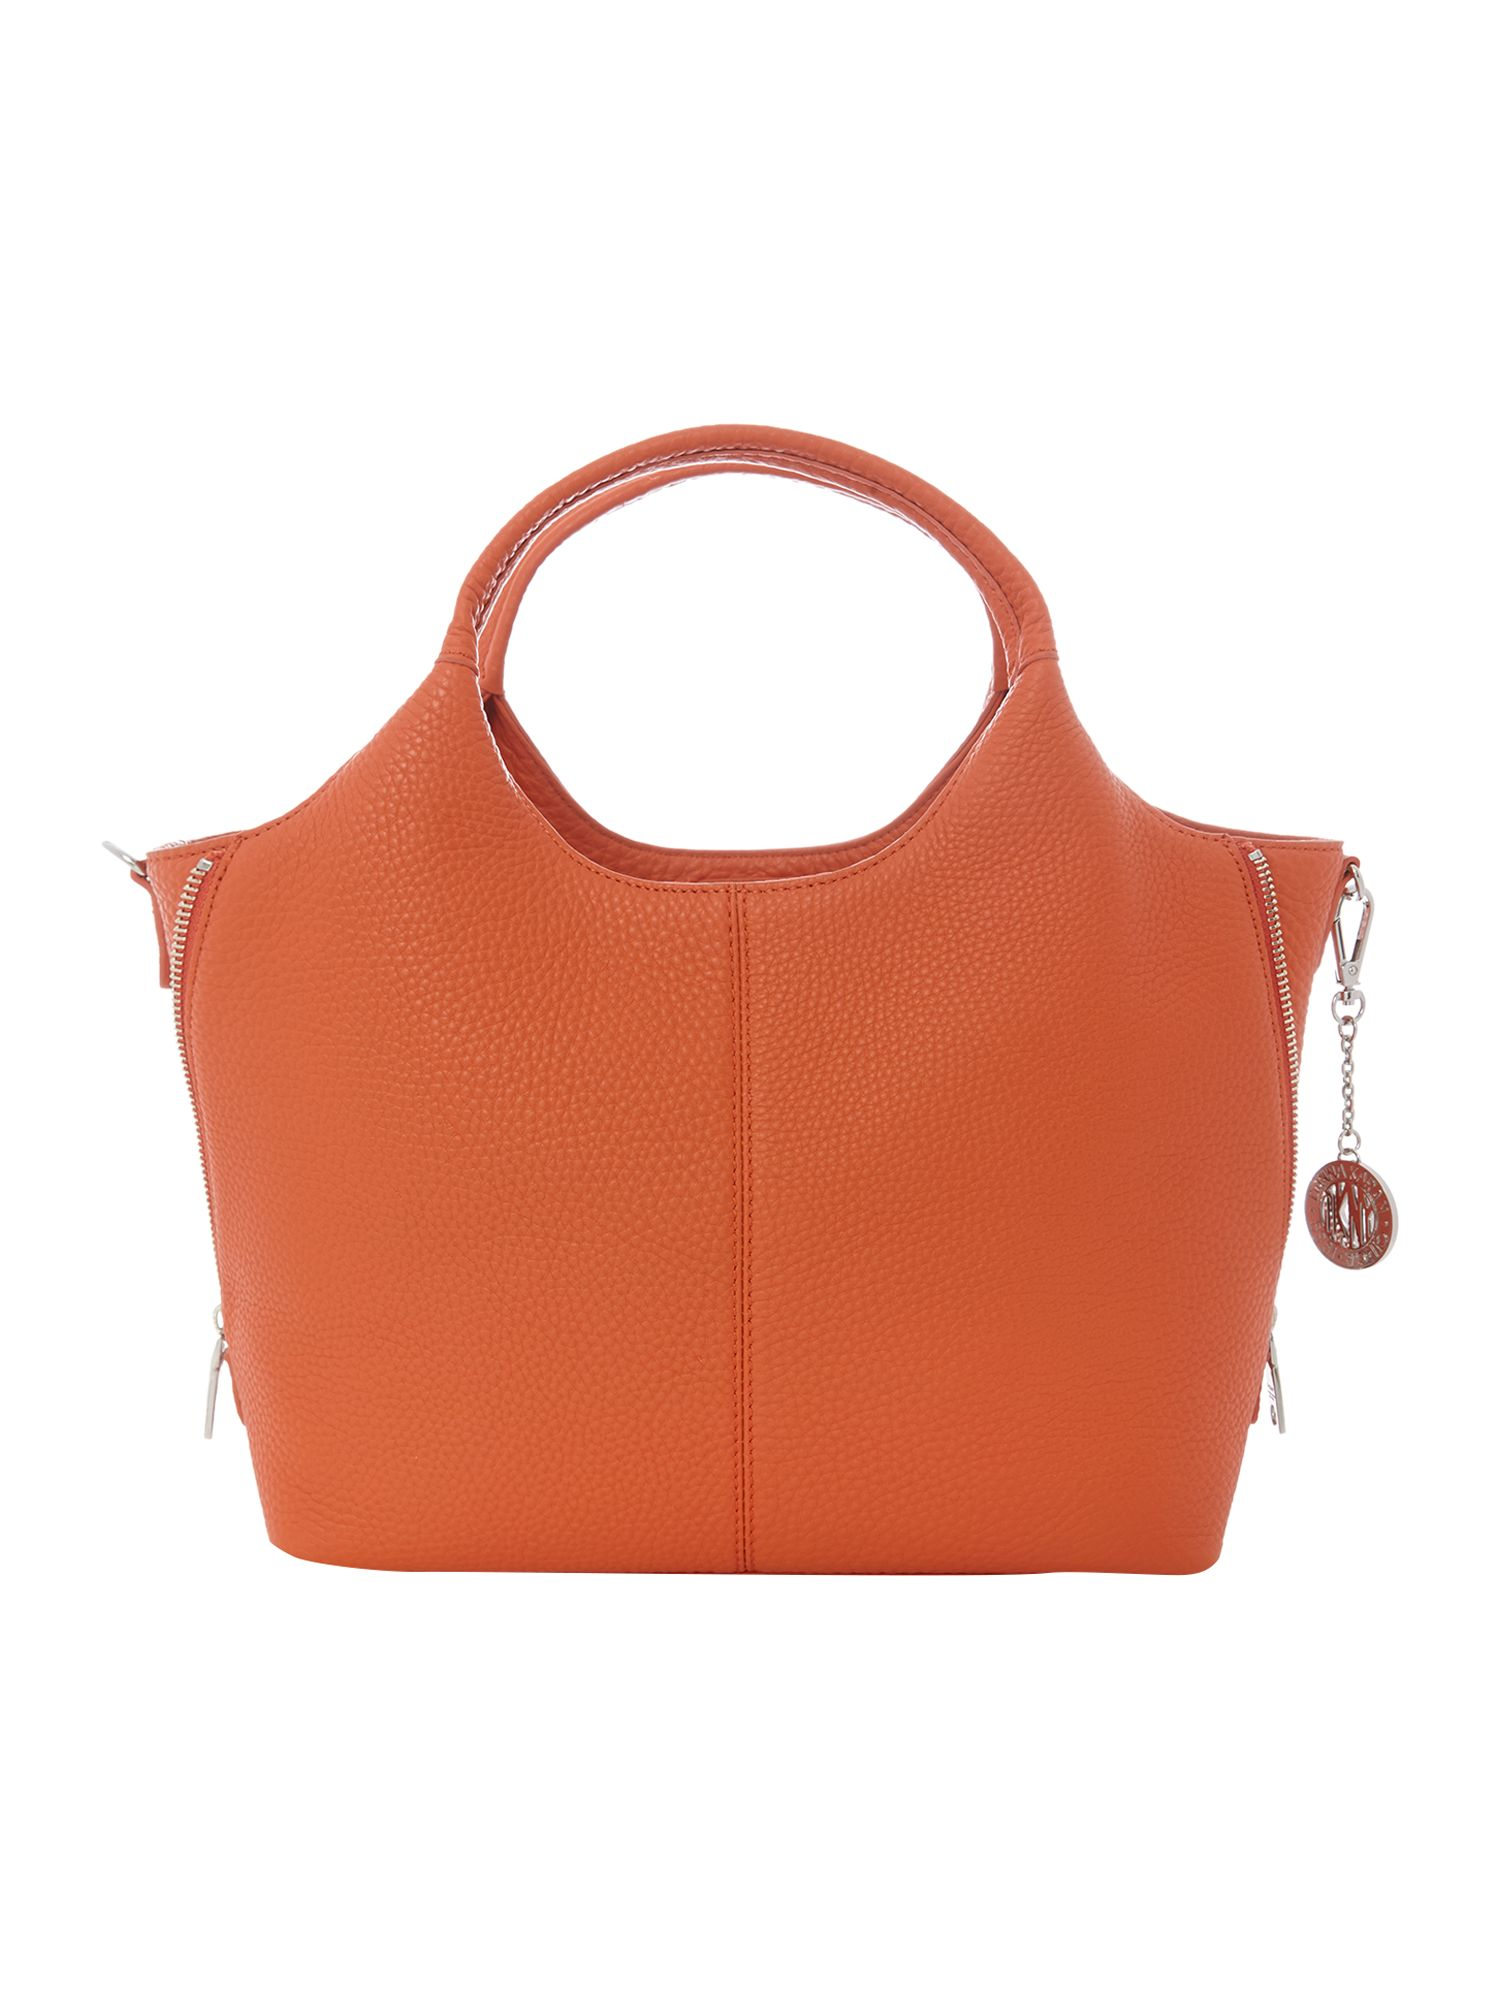 Tribeca soft orange medium tote bag